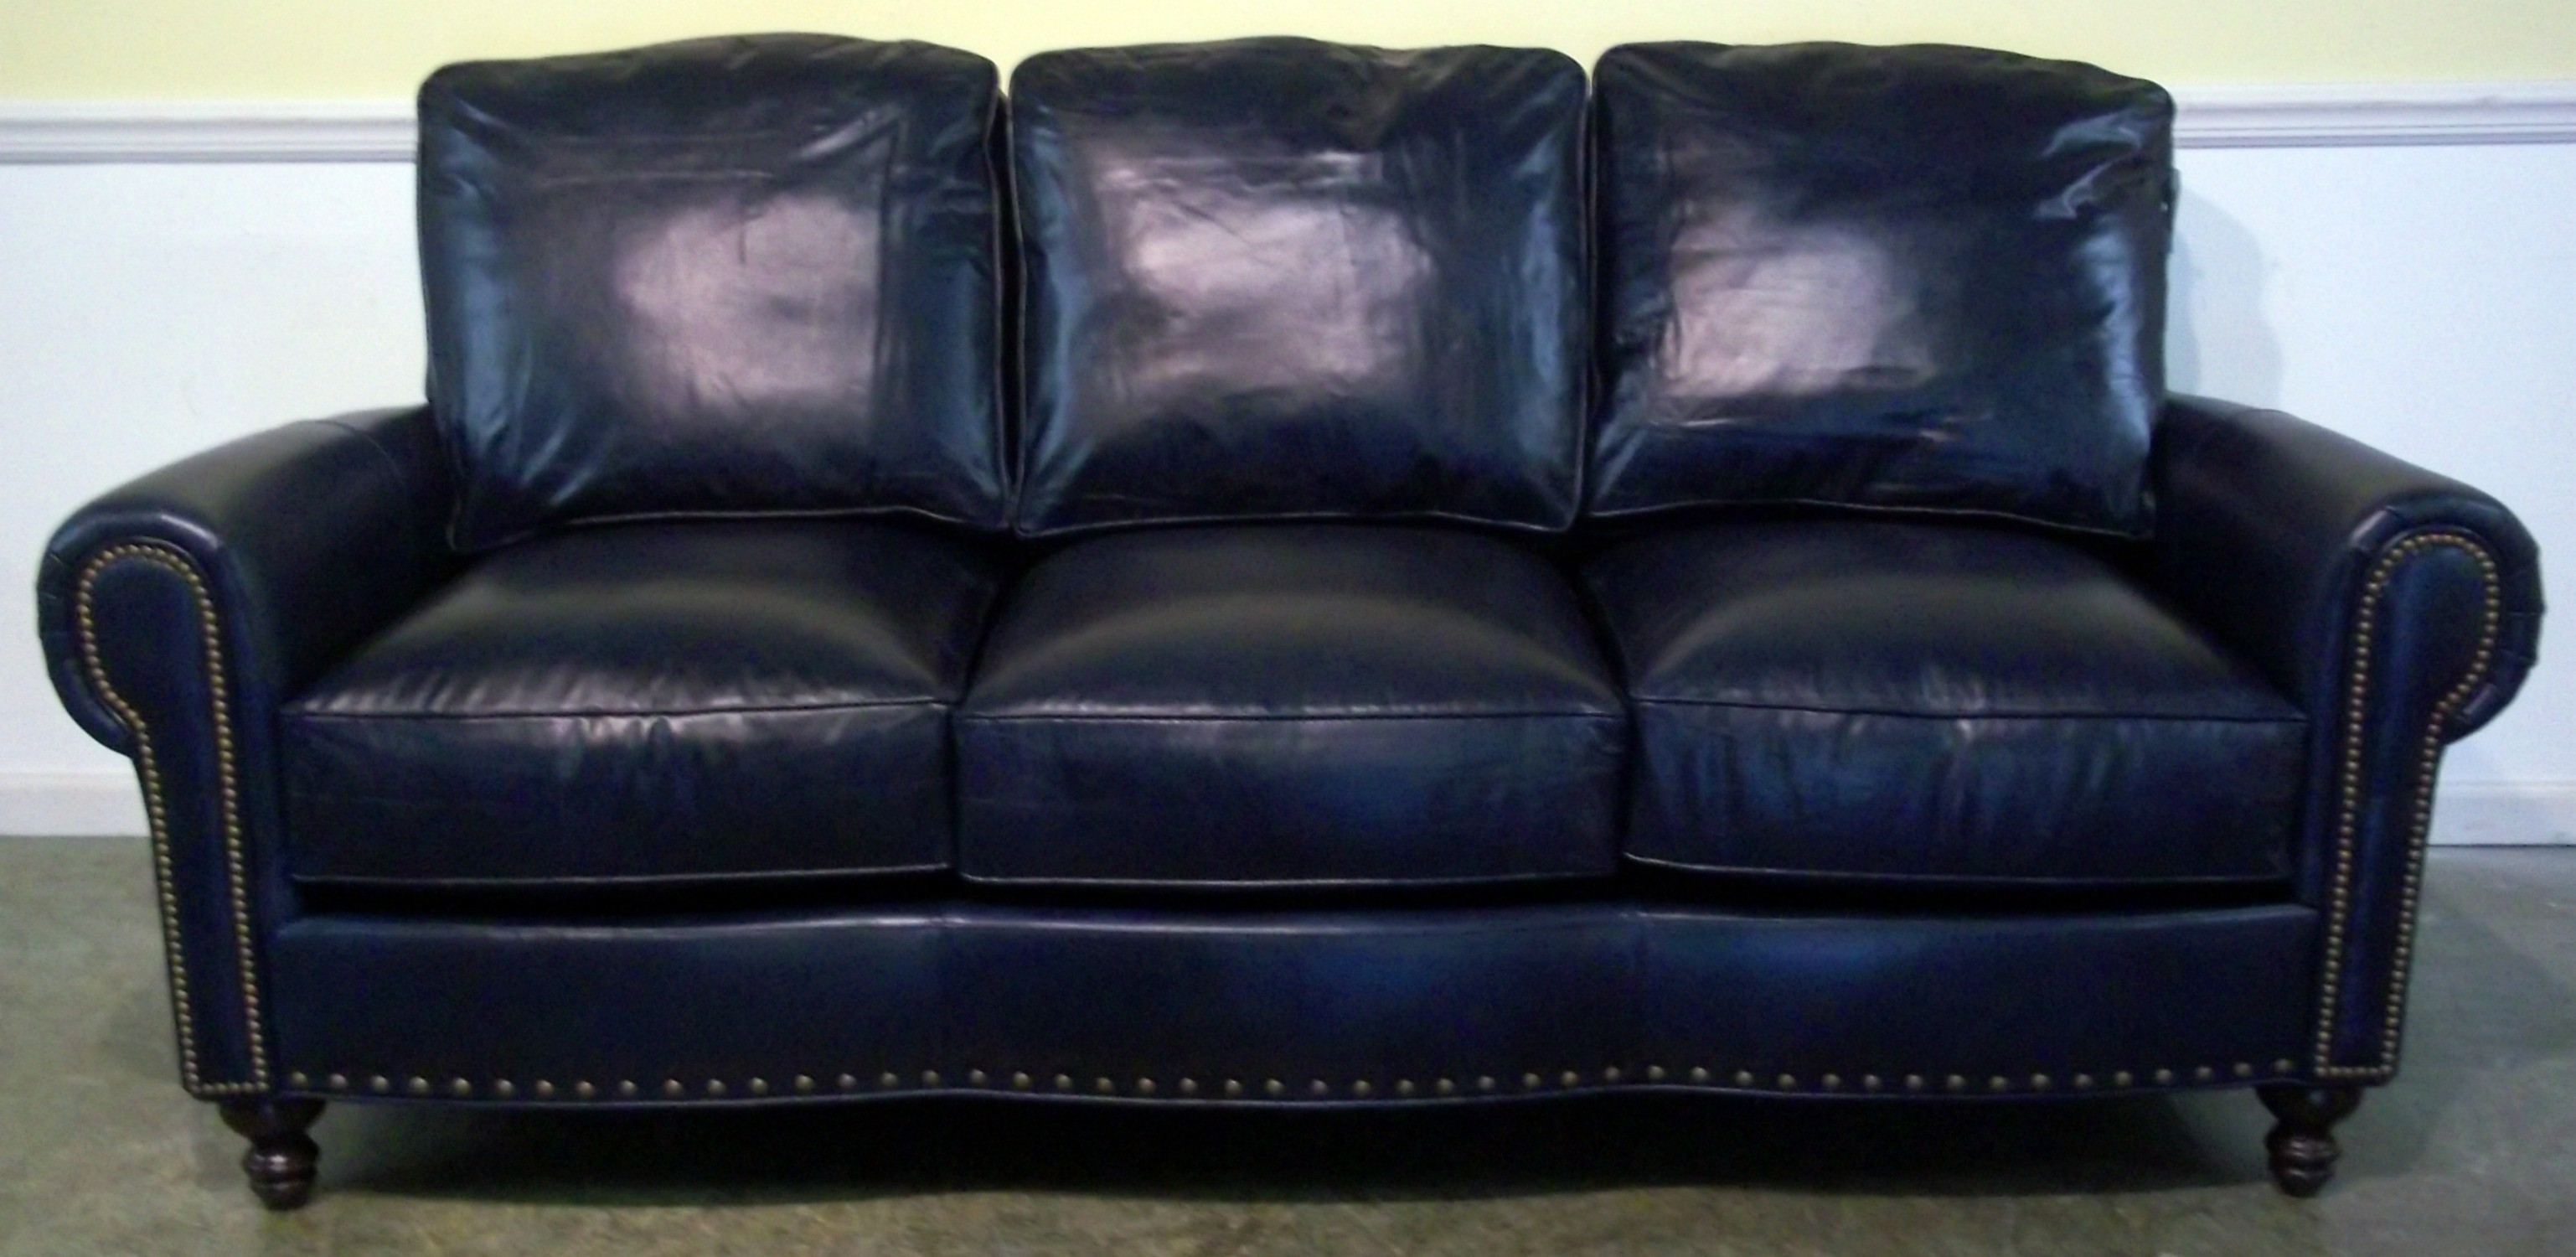 Merveilleux Luxury Navy Blue Leather Sofa 14 For Your Sofas And Couches Ideas With Navy Blue  Leather Sofa